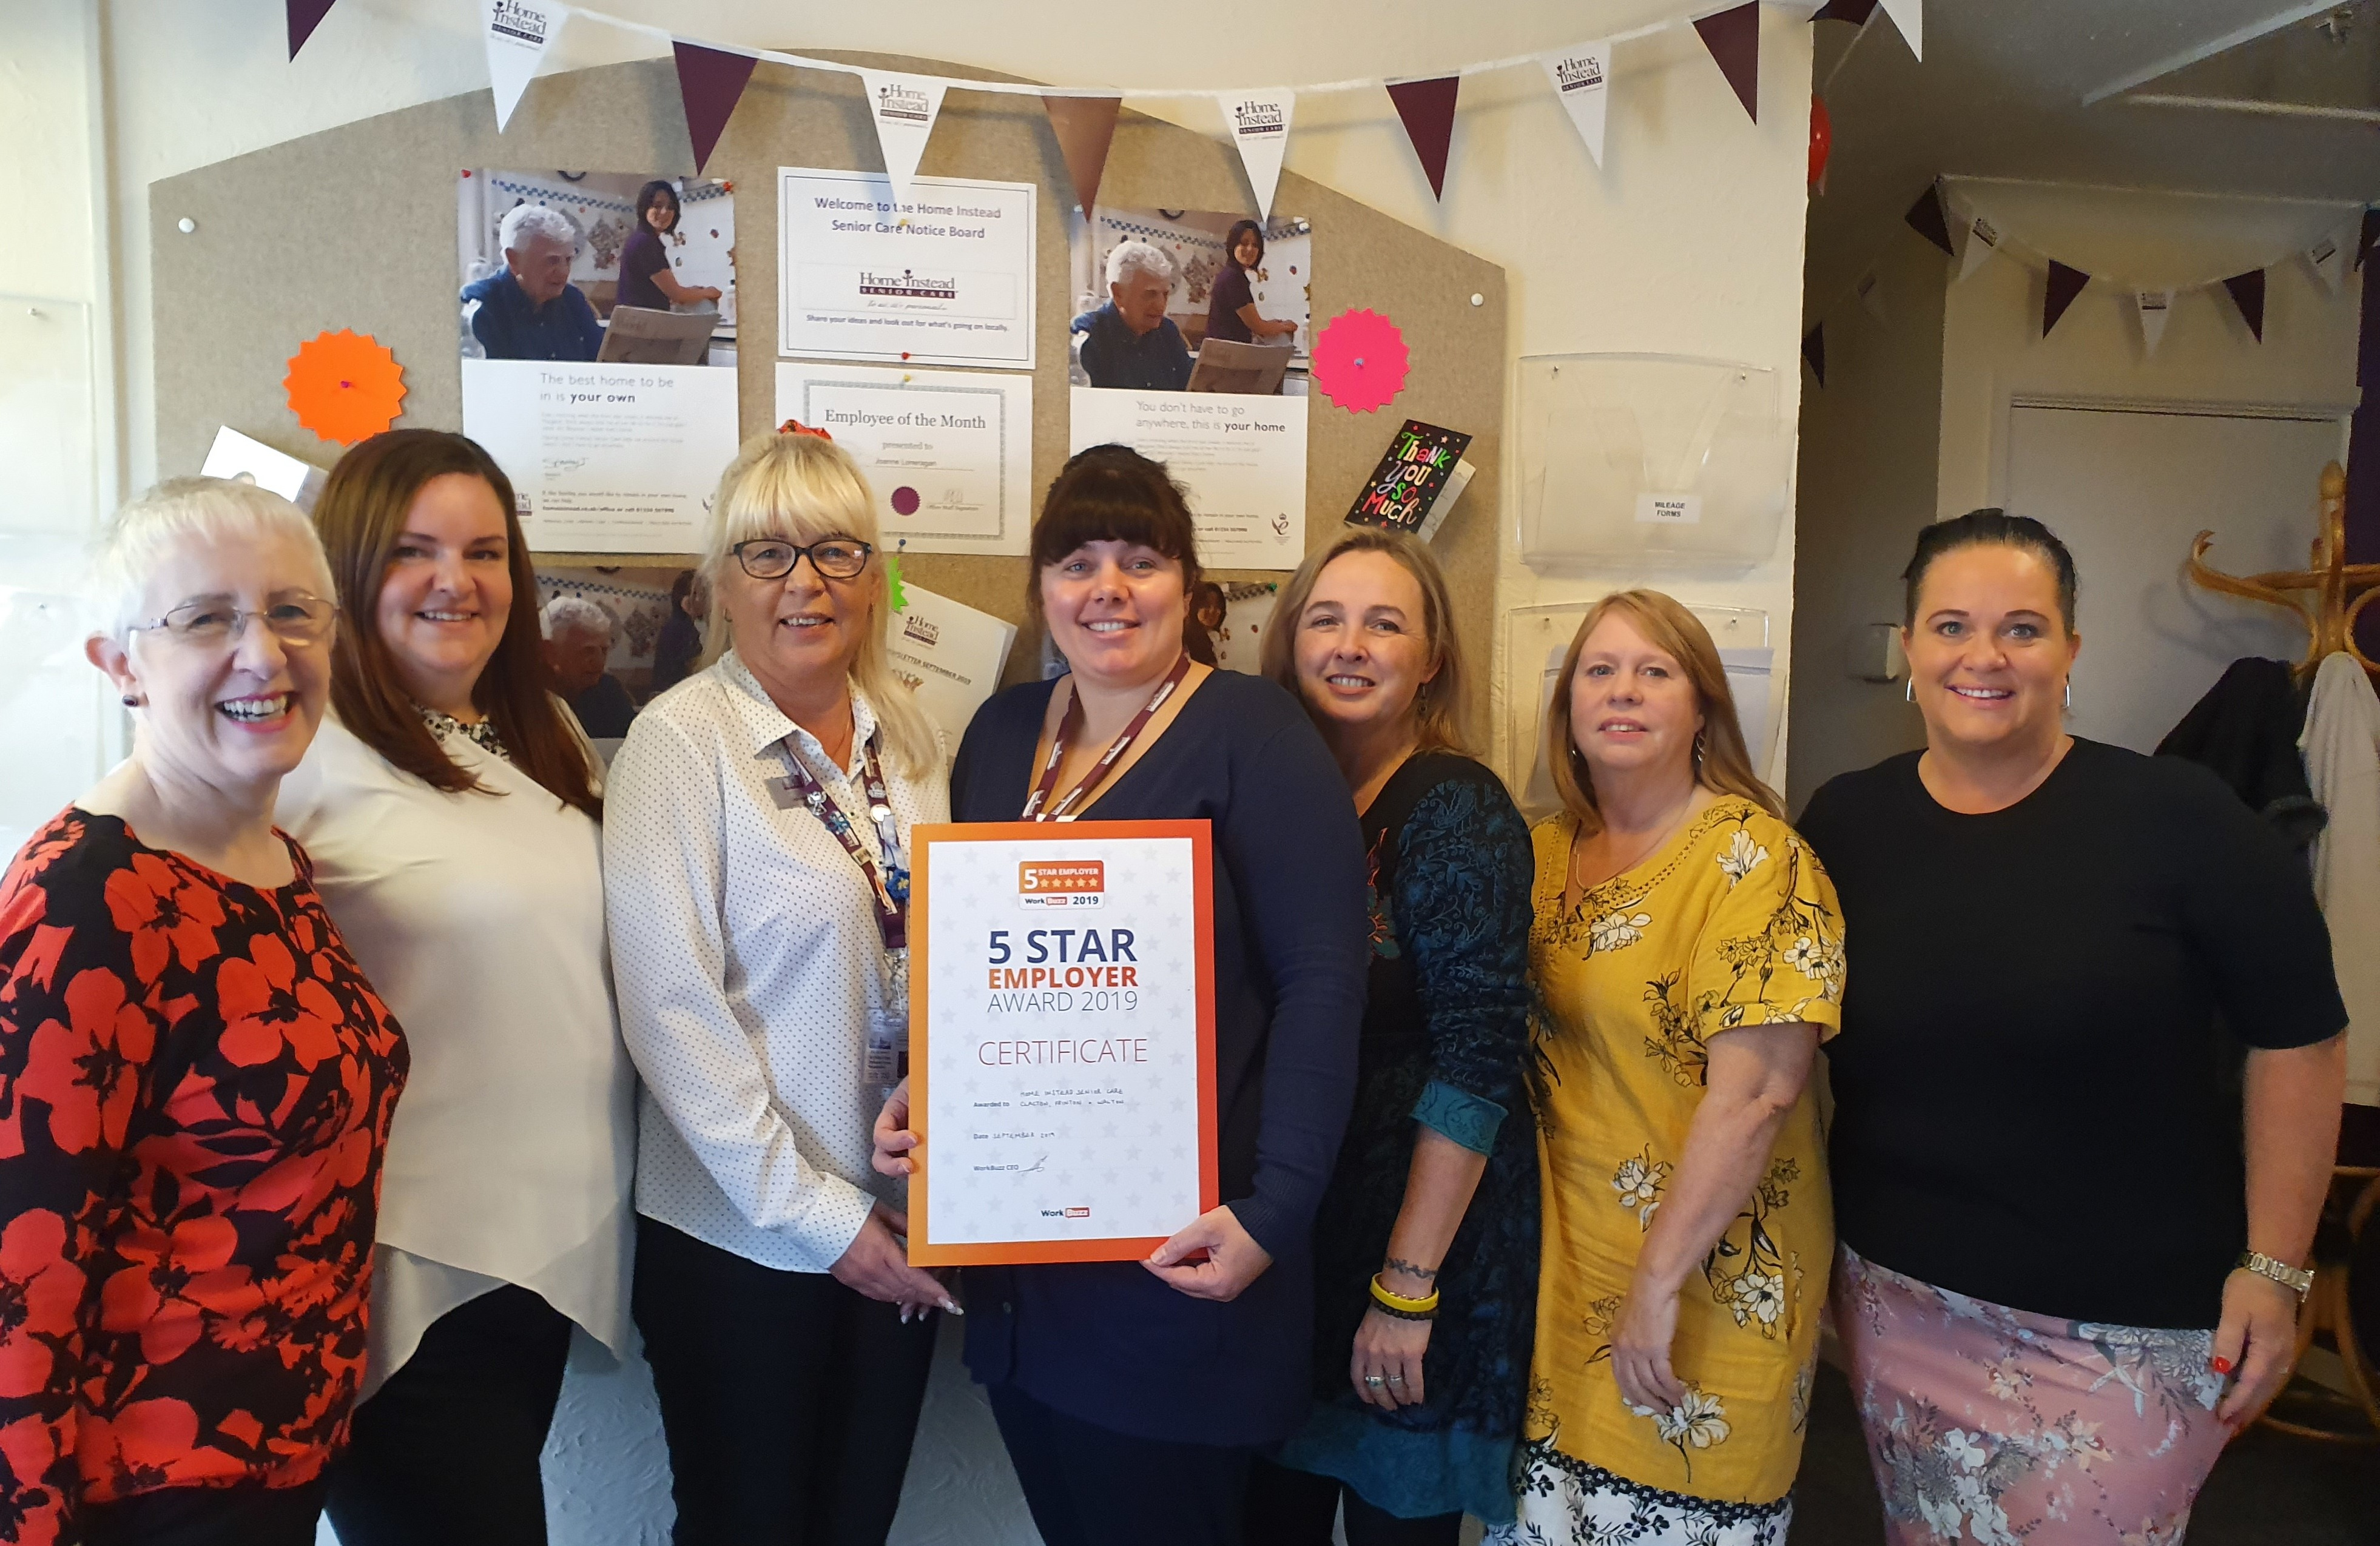 Office team with 5 Star Award from WorkBuzz